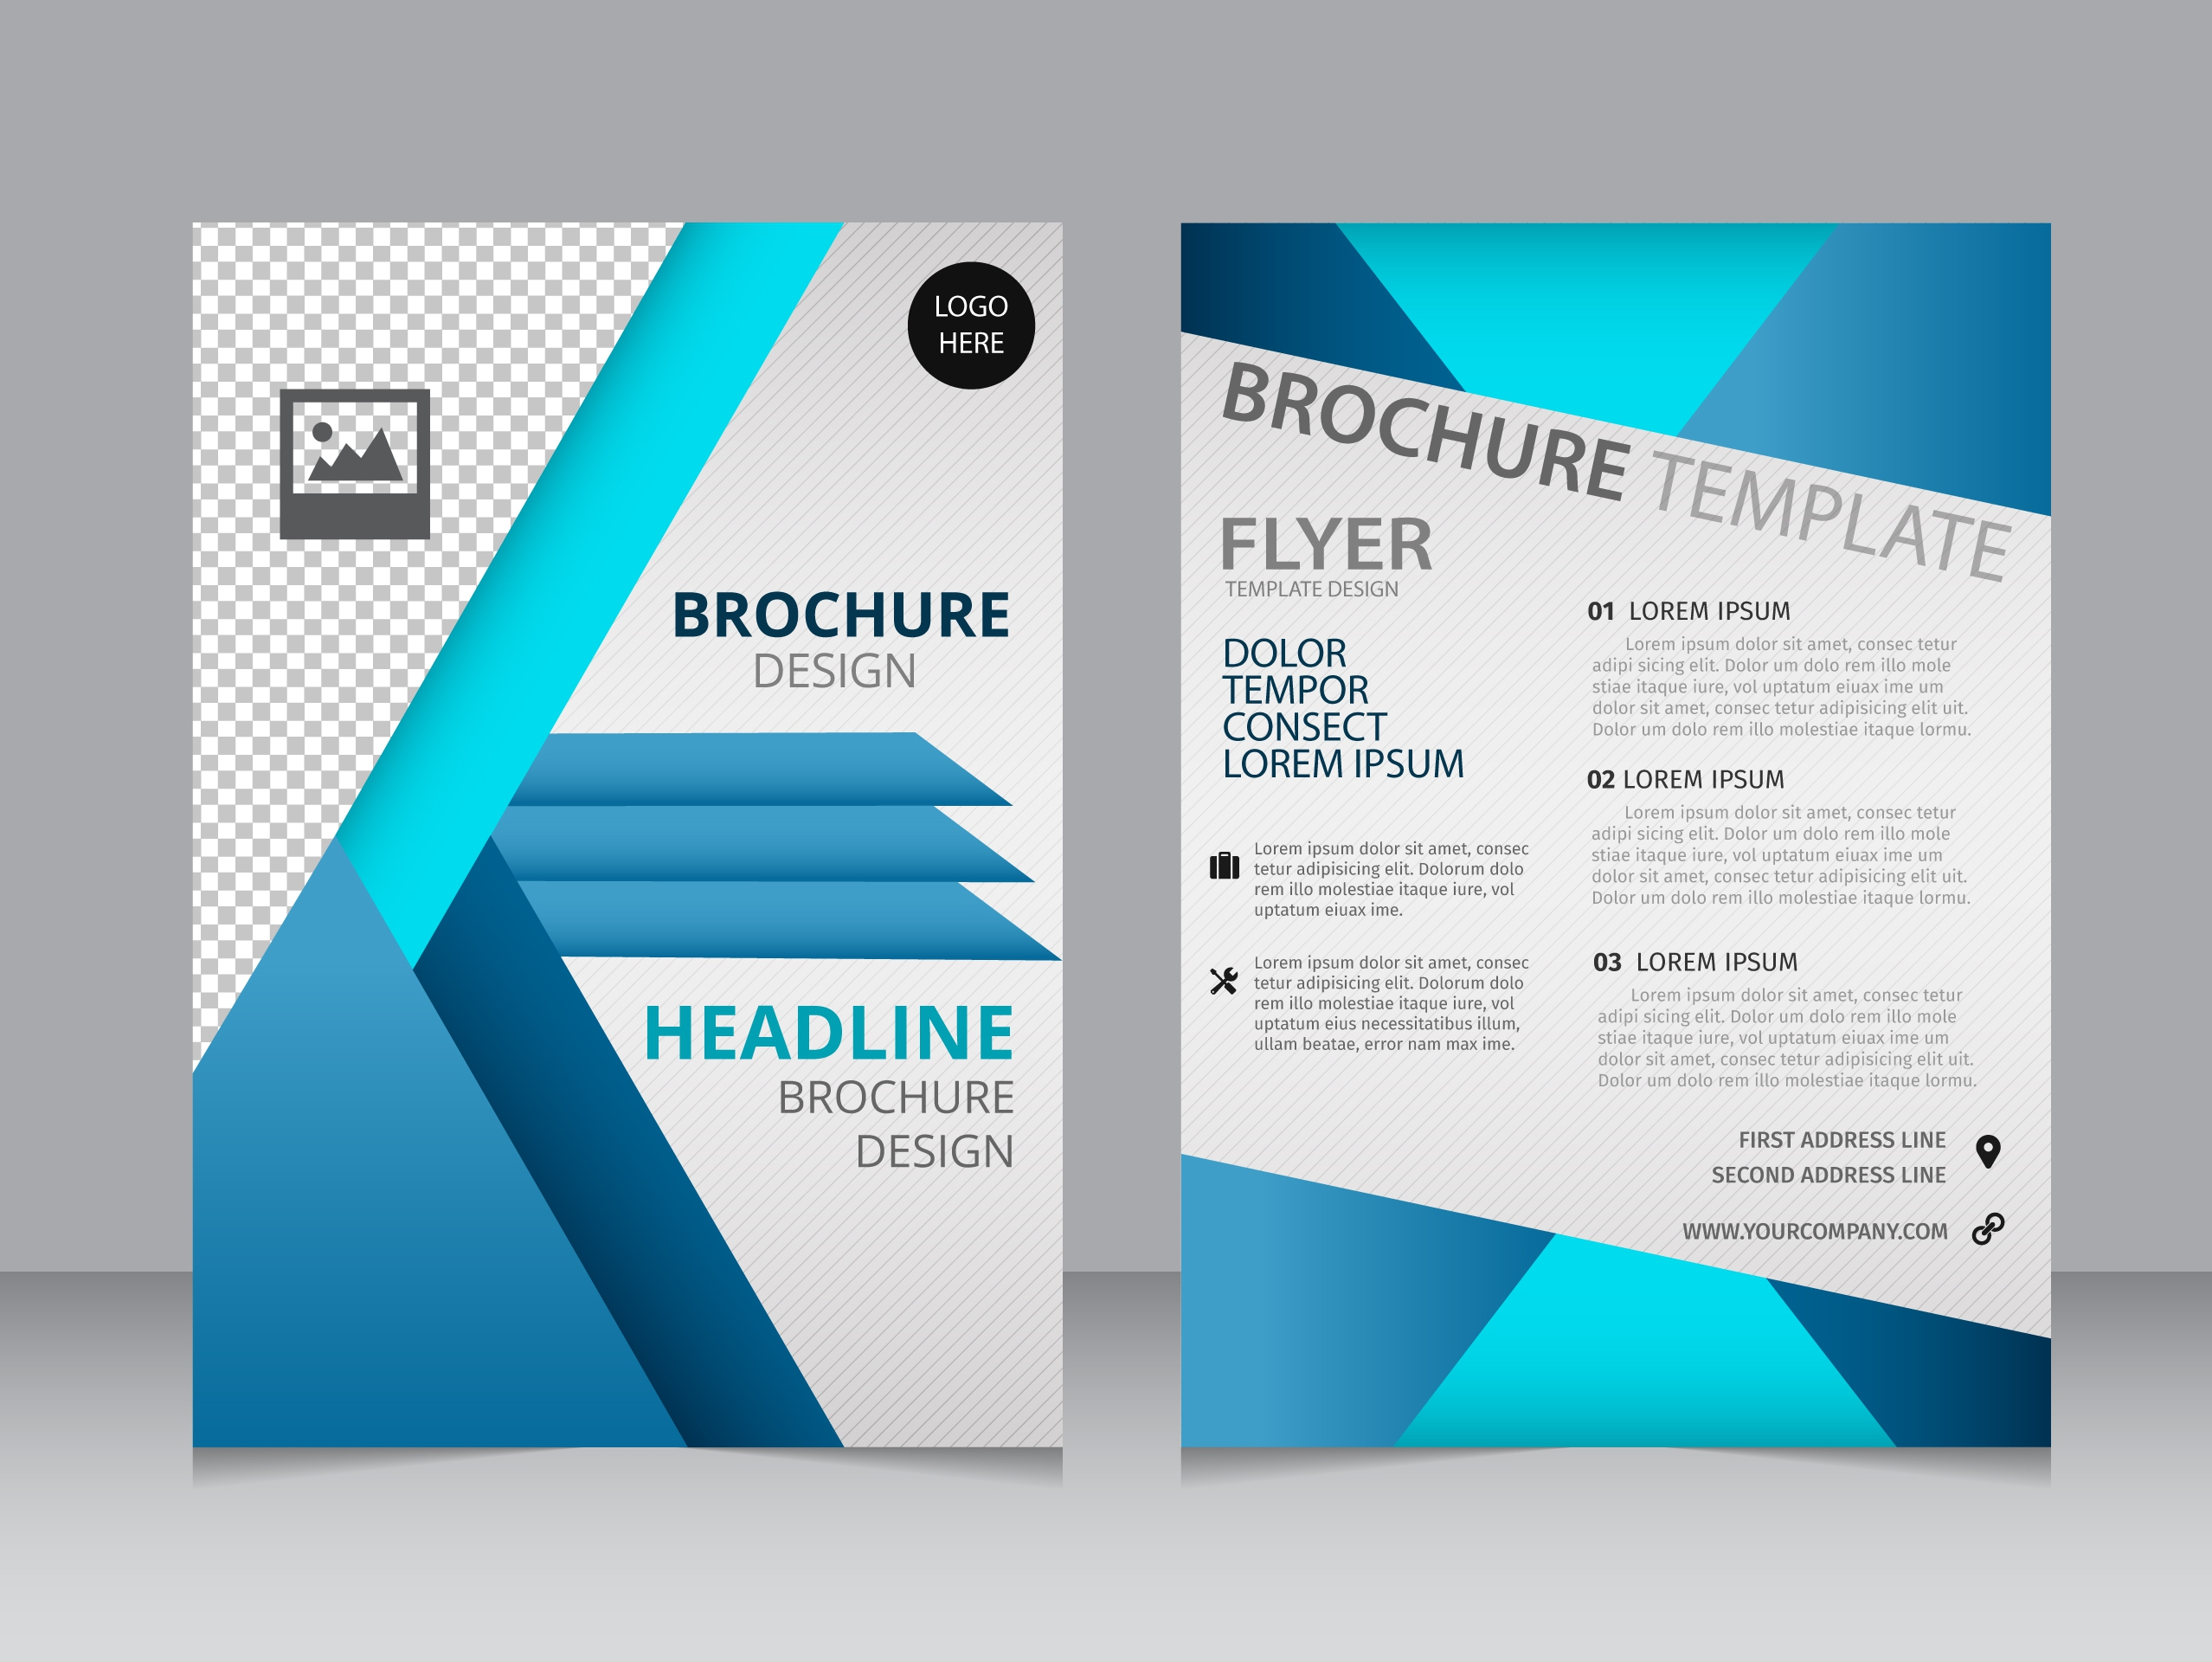 brochures template - 11 free sample travel brochure templates printable samples